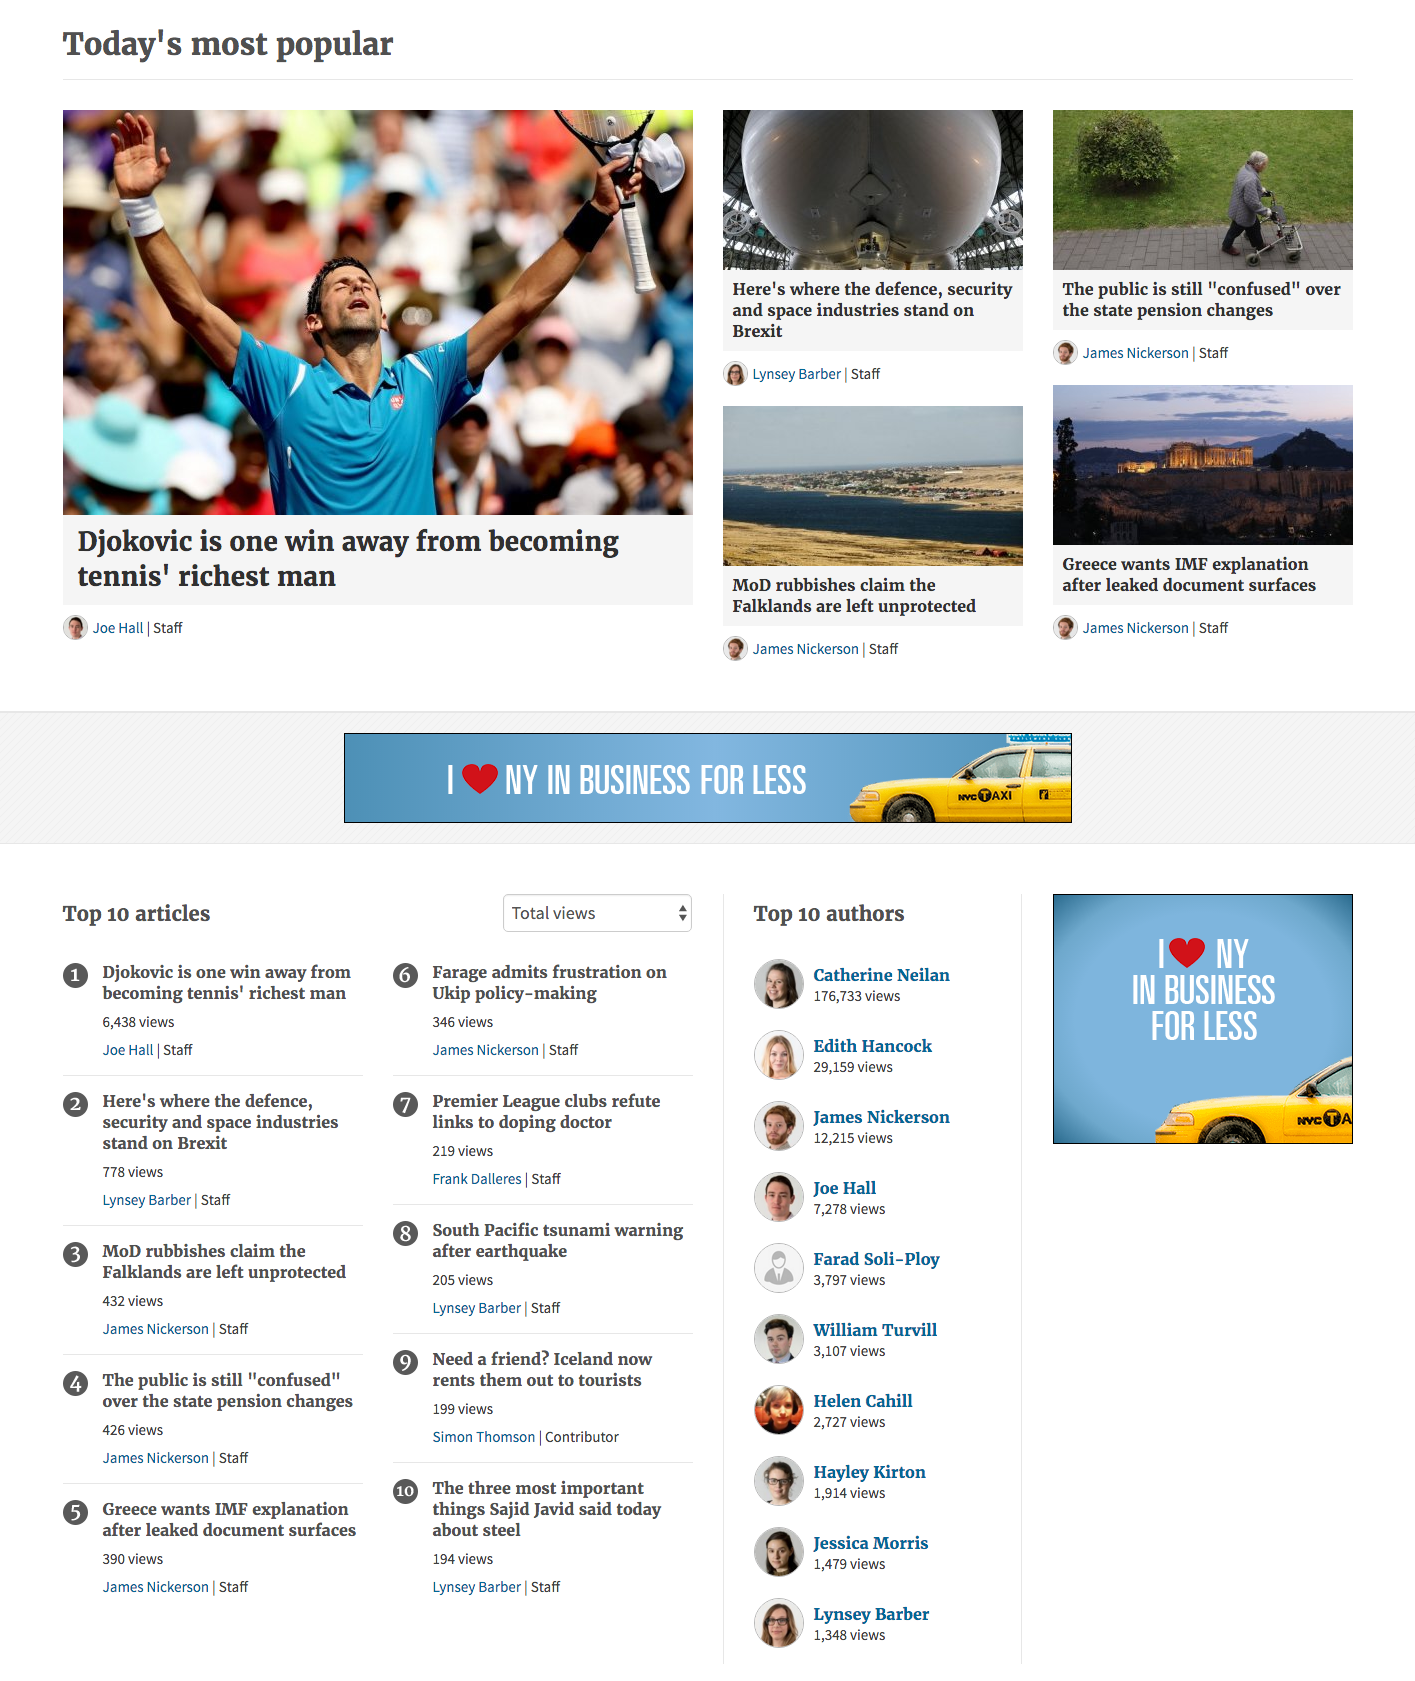 cityam-redesign-4-most-popular-page.png